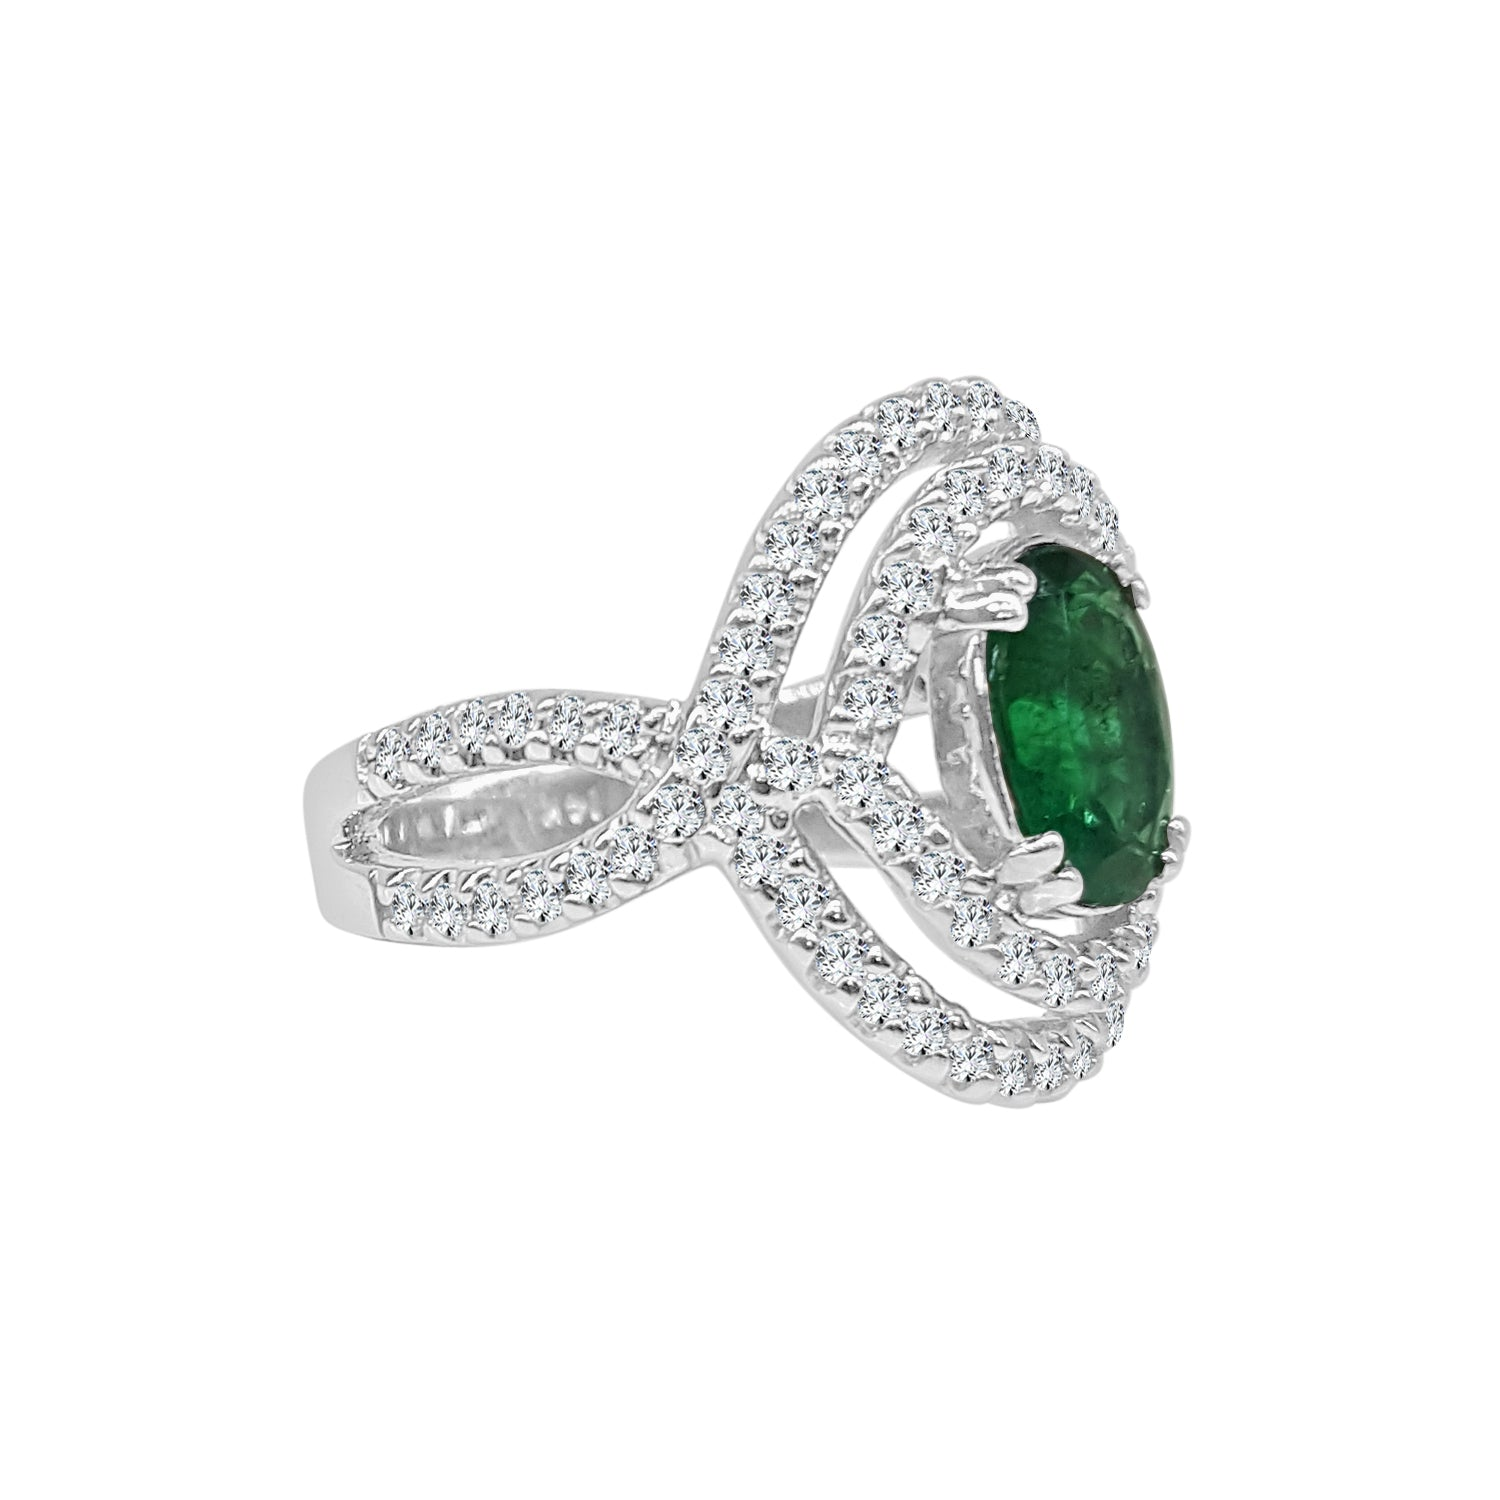 Oval Emerald Ring With Fancy Diamond Double Halo